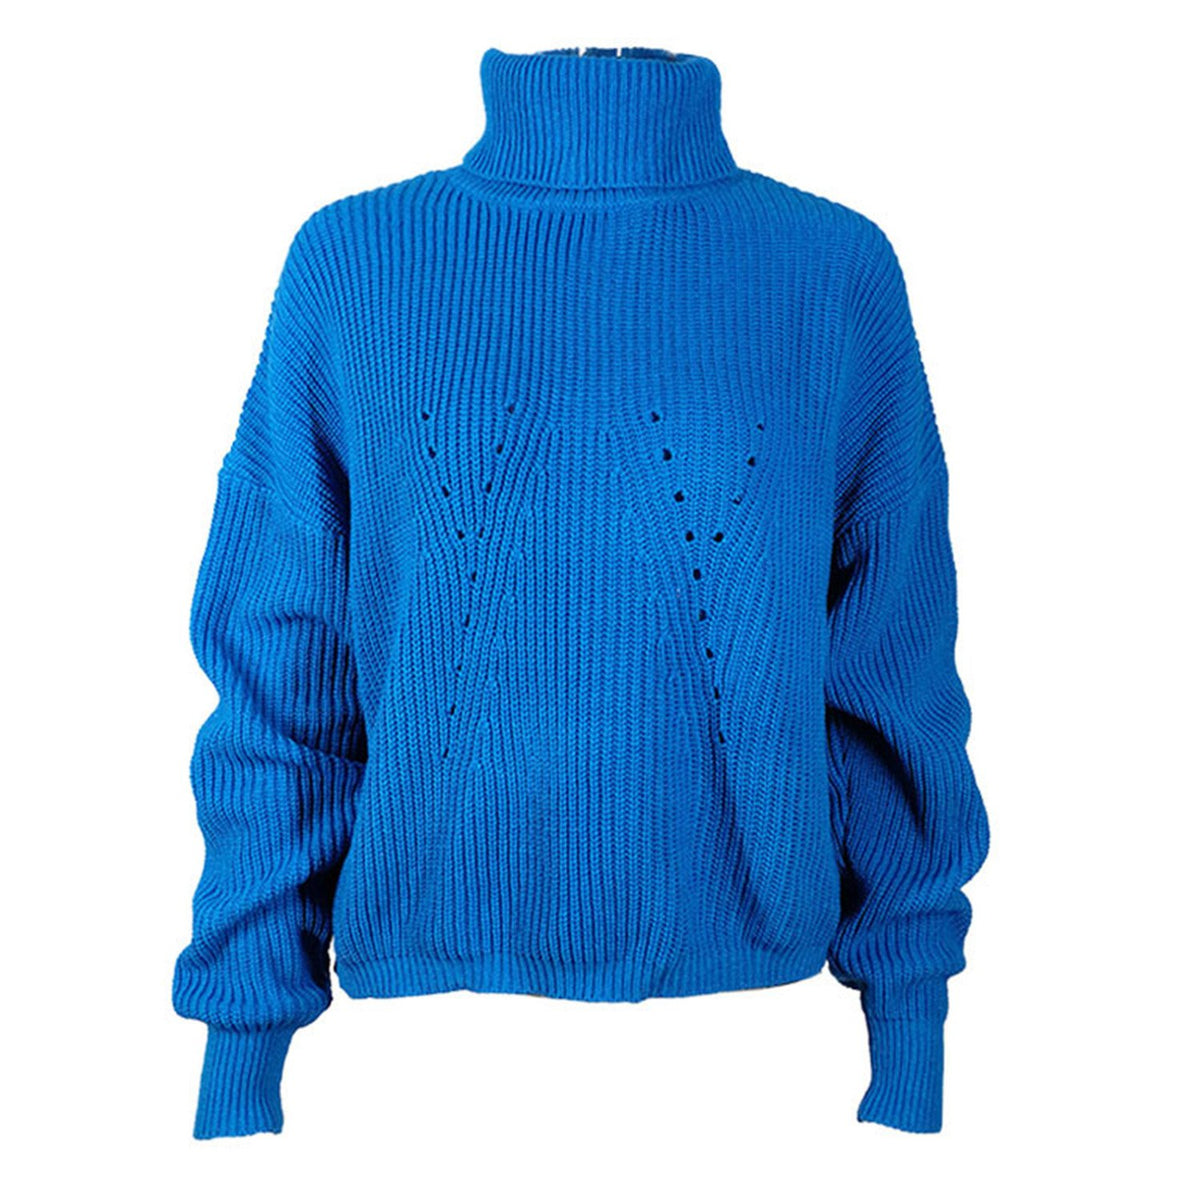 High Neck Bat Wing Short Knit Sweater - worthtryit.com